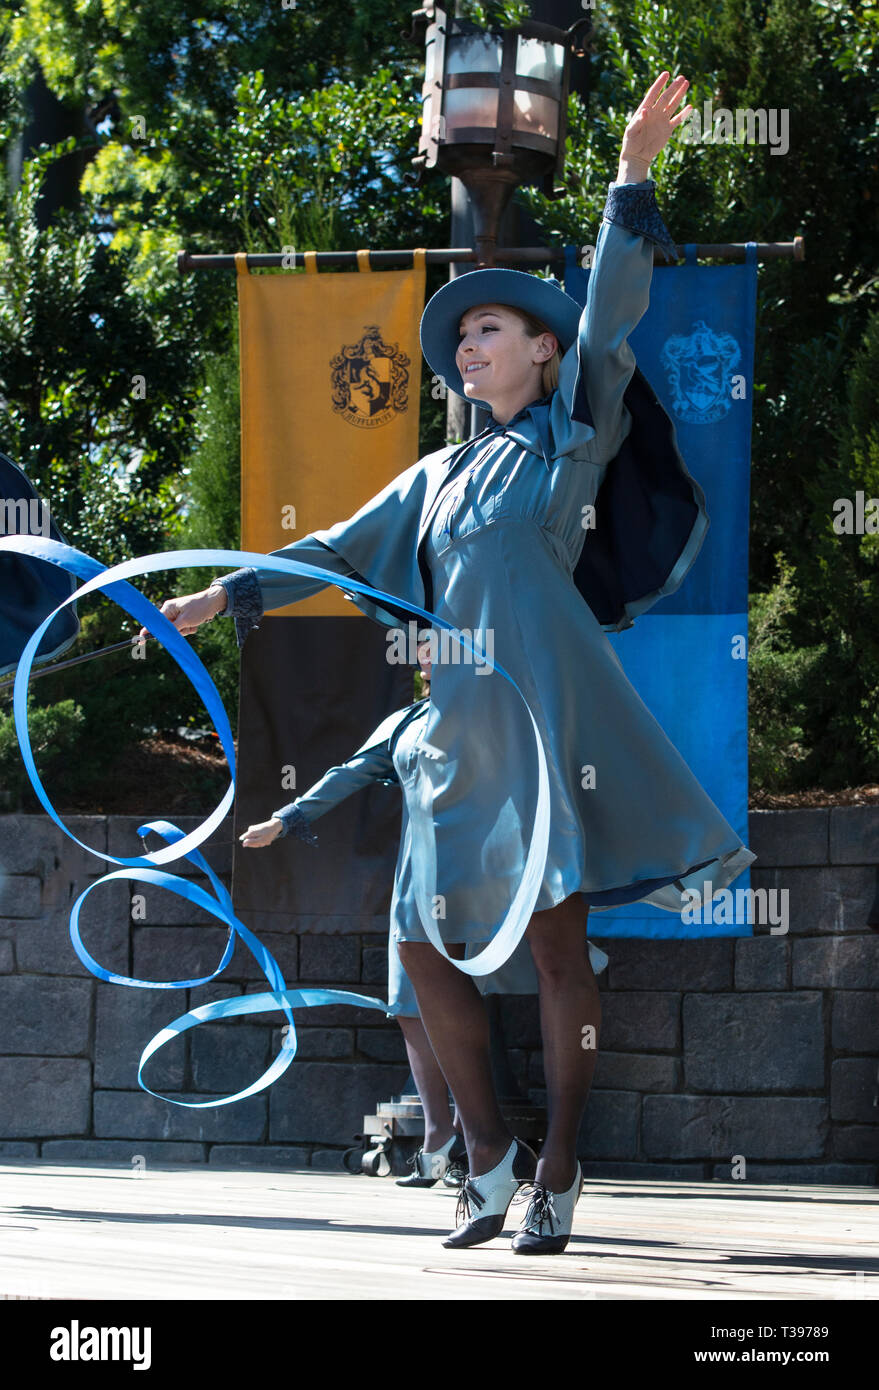 Beauxbaton ribbon dancer, on stage during live performance, with twirling blue ribbon, Wizarding World of Harry Potter, Orlando, Florida, USA. - Stock Image